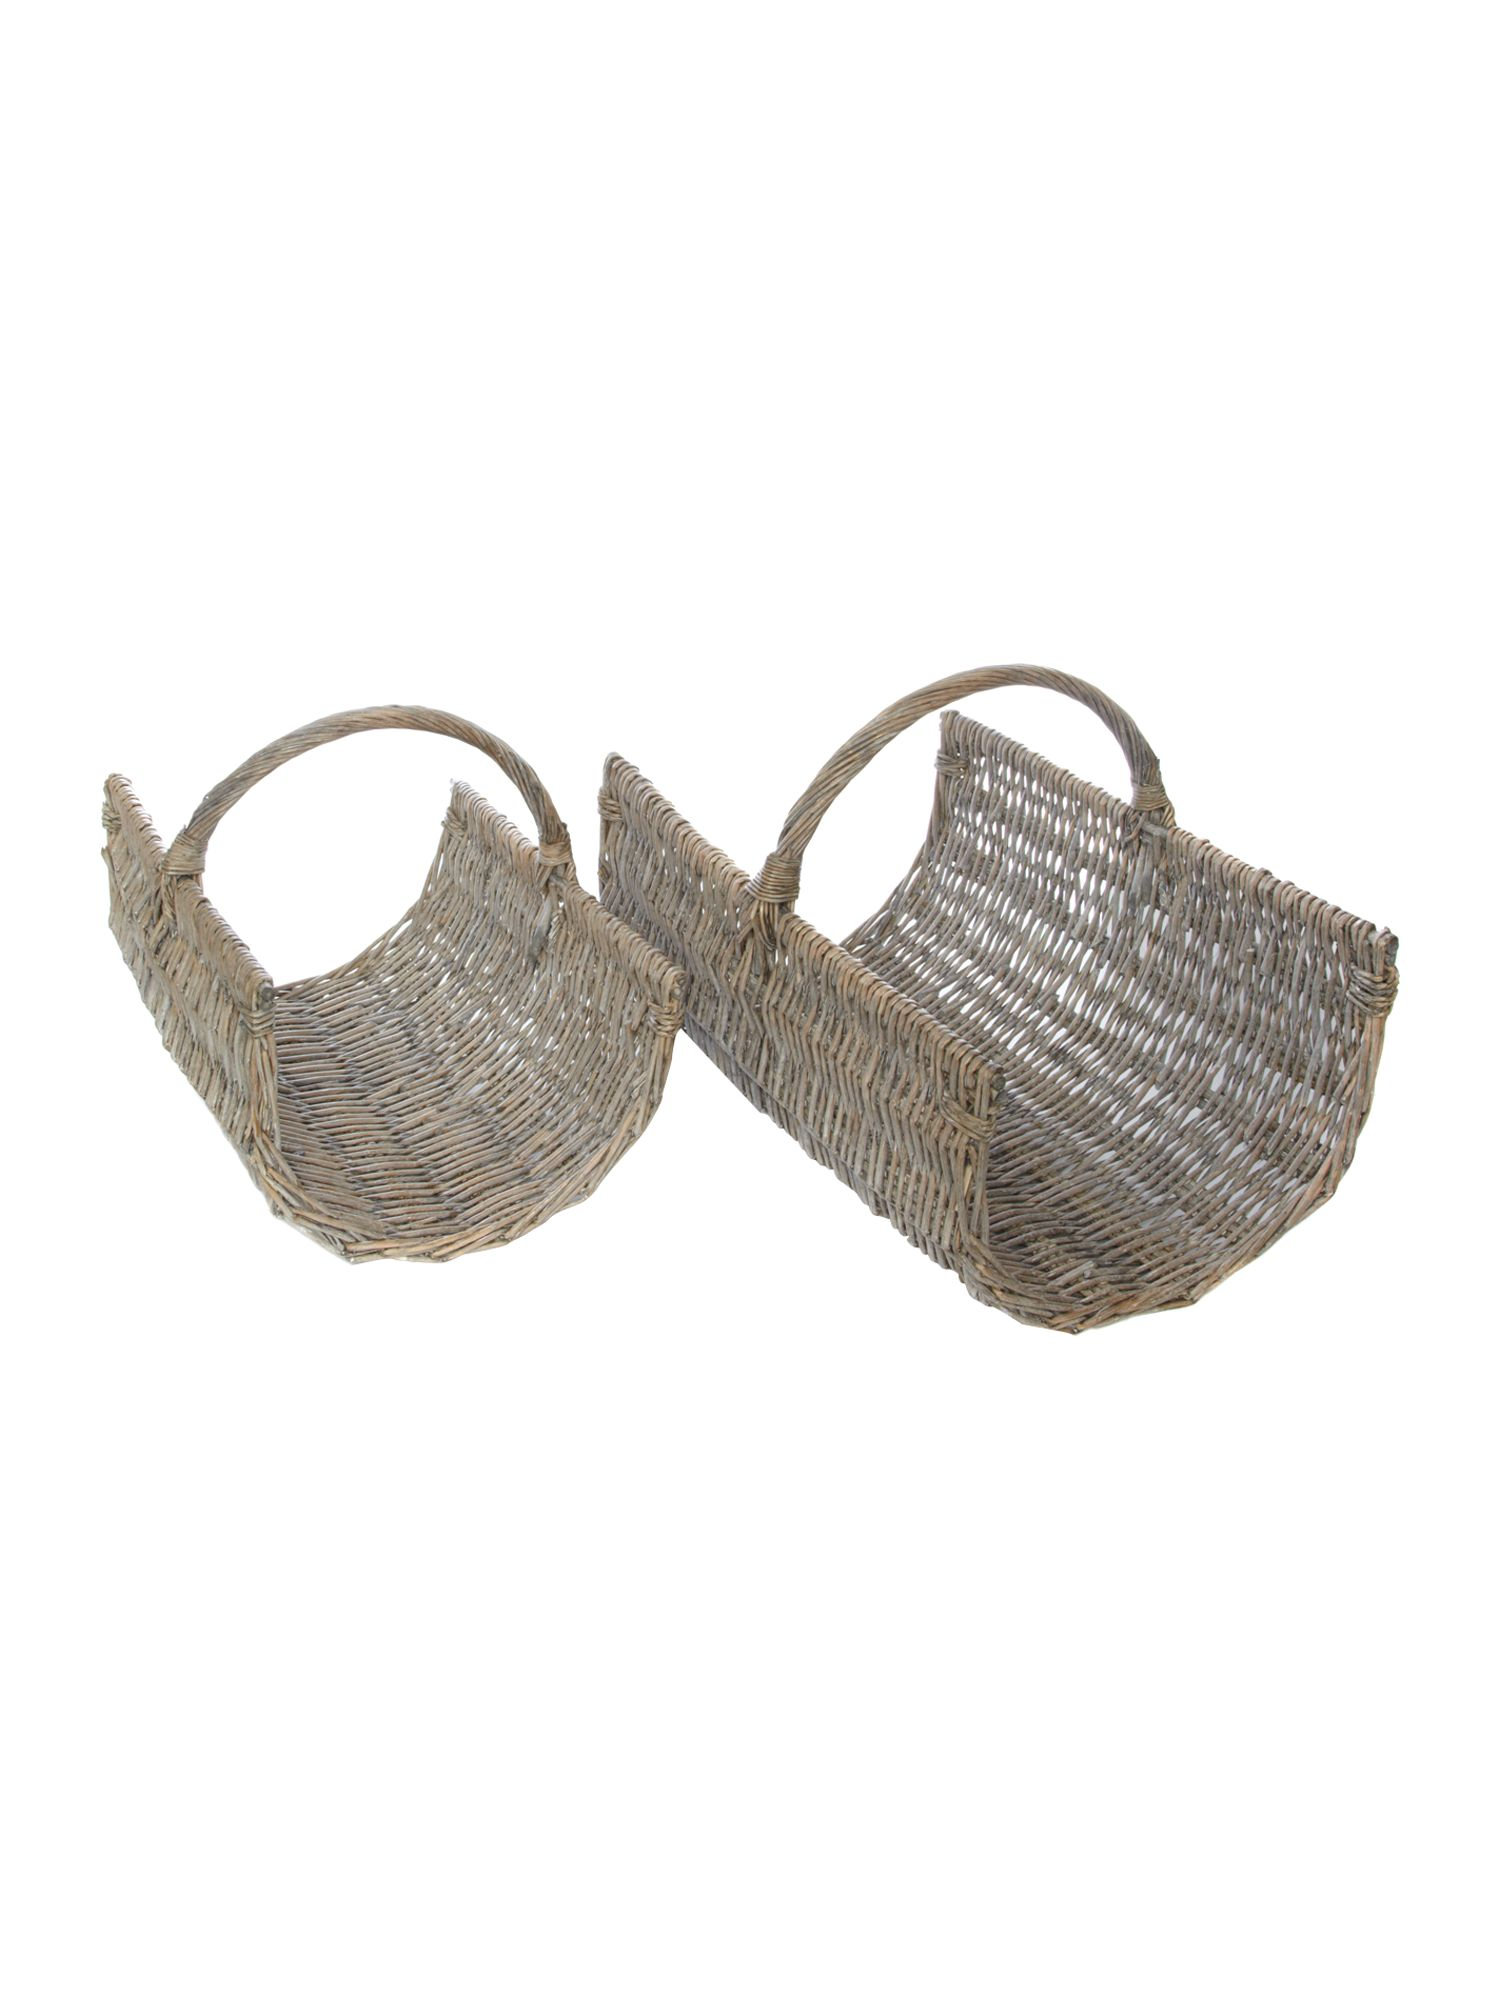 Set of 2 whitewashed open baskets